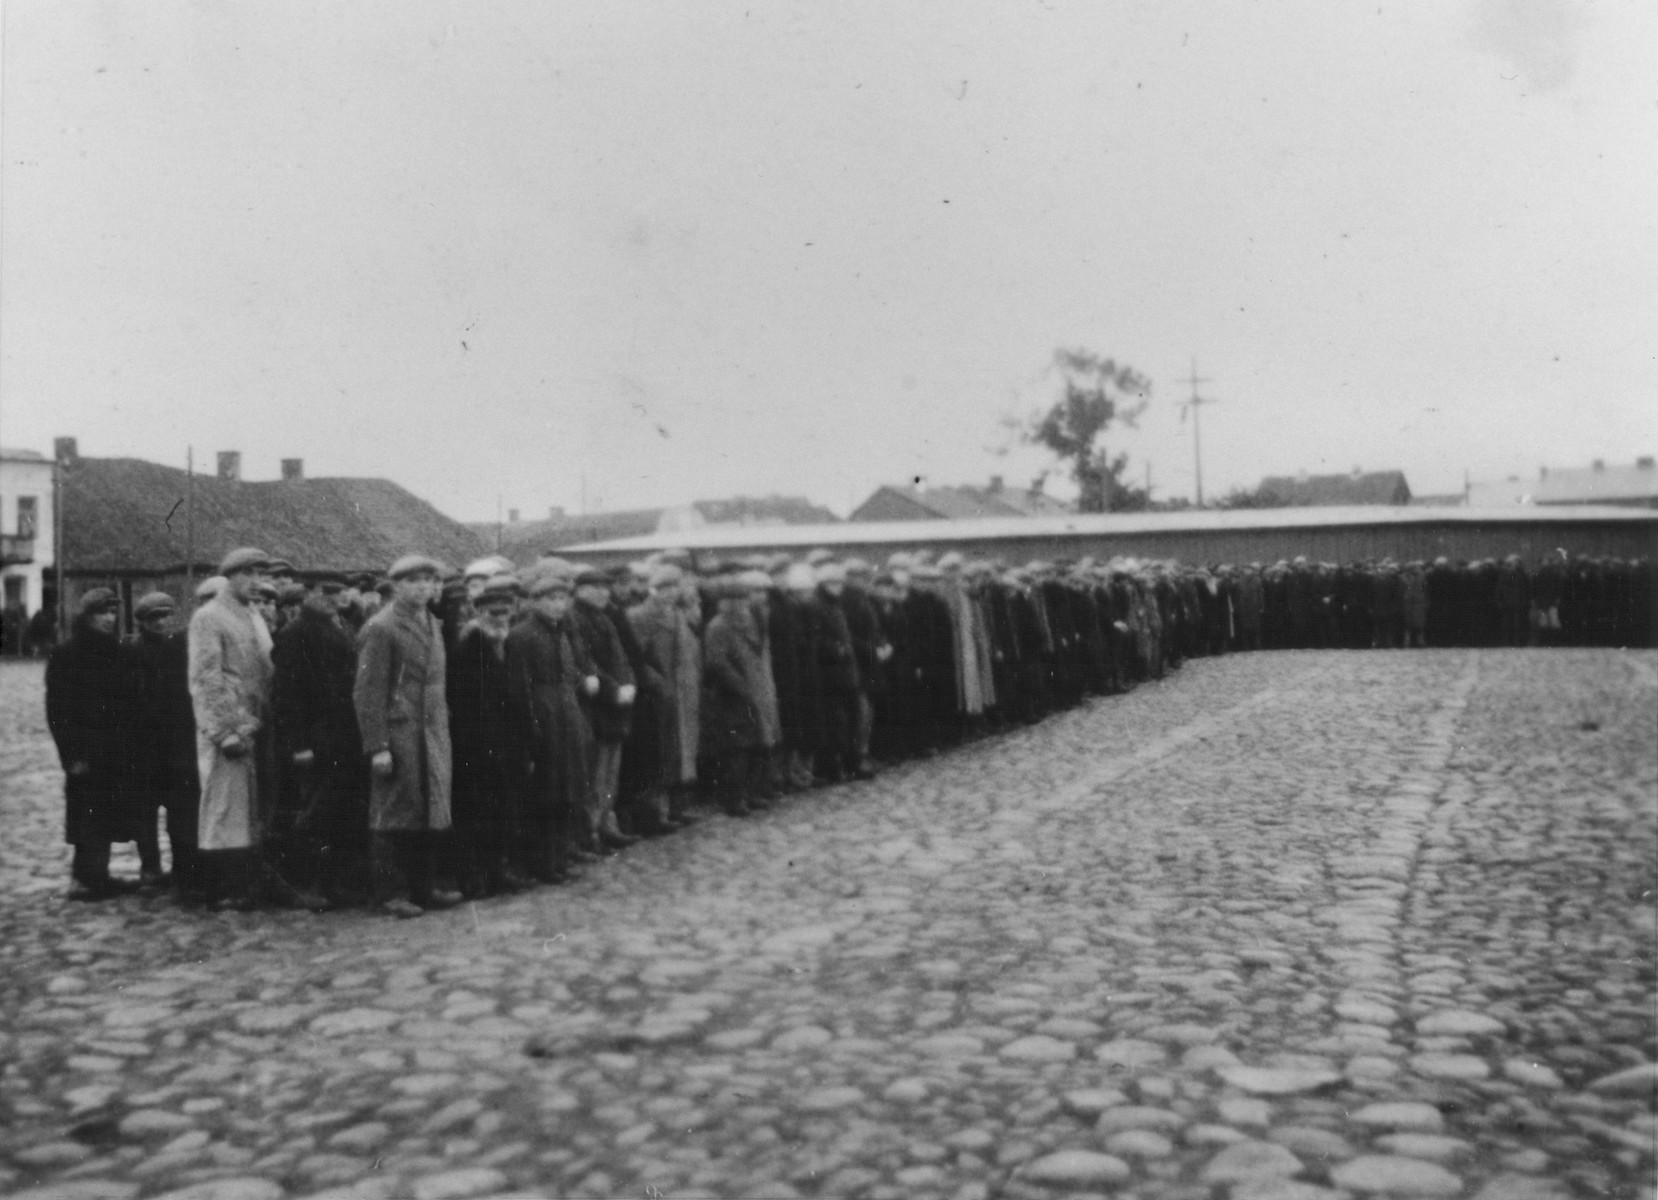 Jewish men are lined up along the perimeter of the town square in Raciaz.